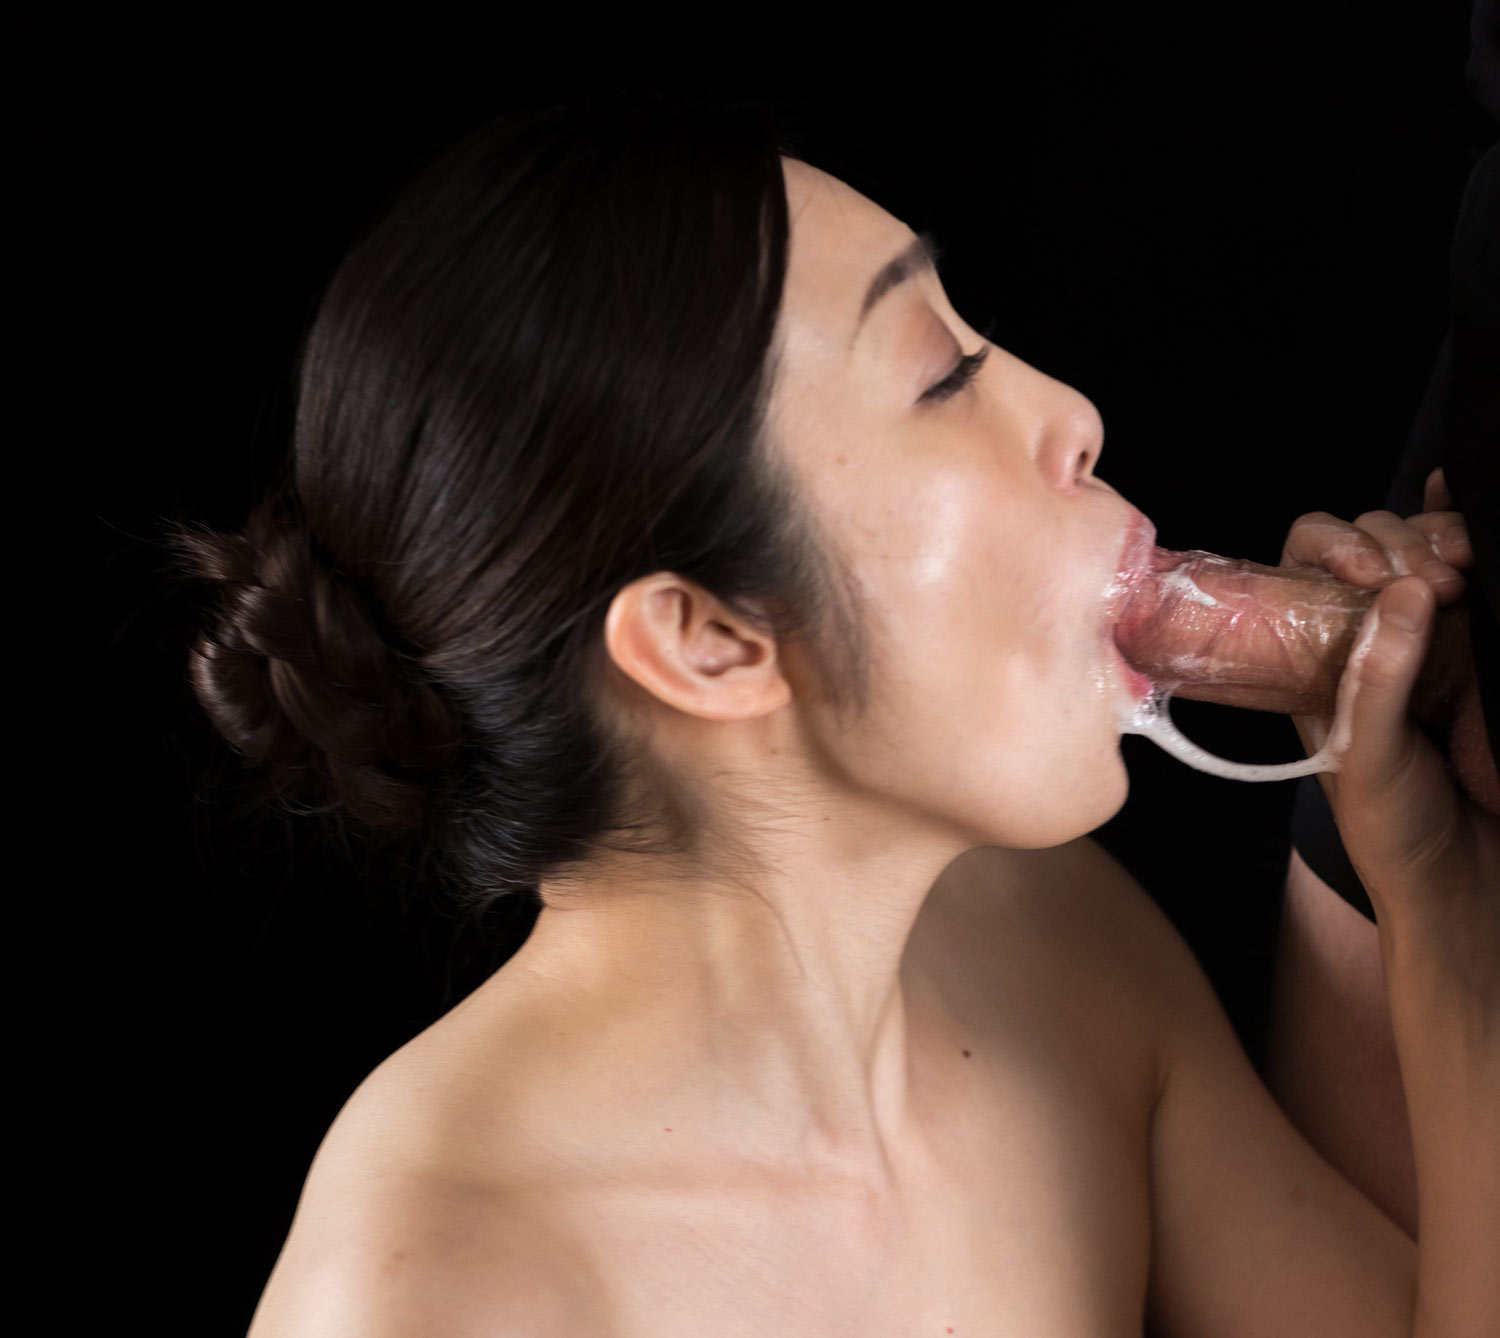 Blowjob, BJ, Fellatio,oral sex. A nude girl giving head by sucking cock. Ryu Enami in an uncensored Blowjob video at SpermMania.